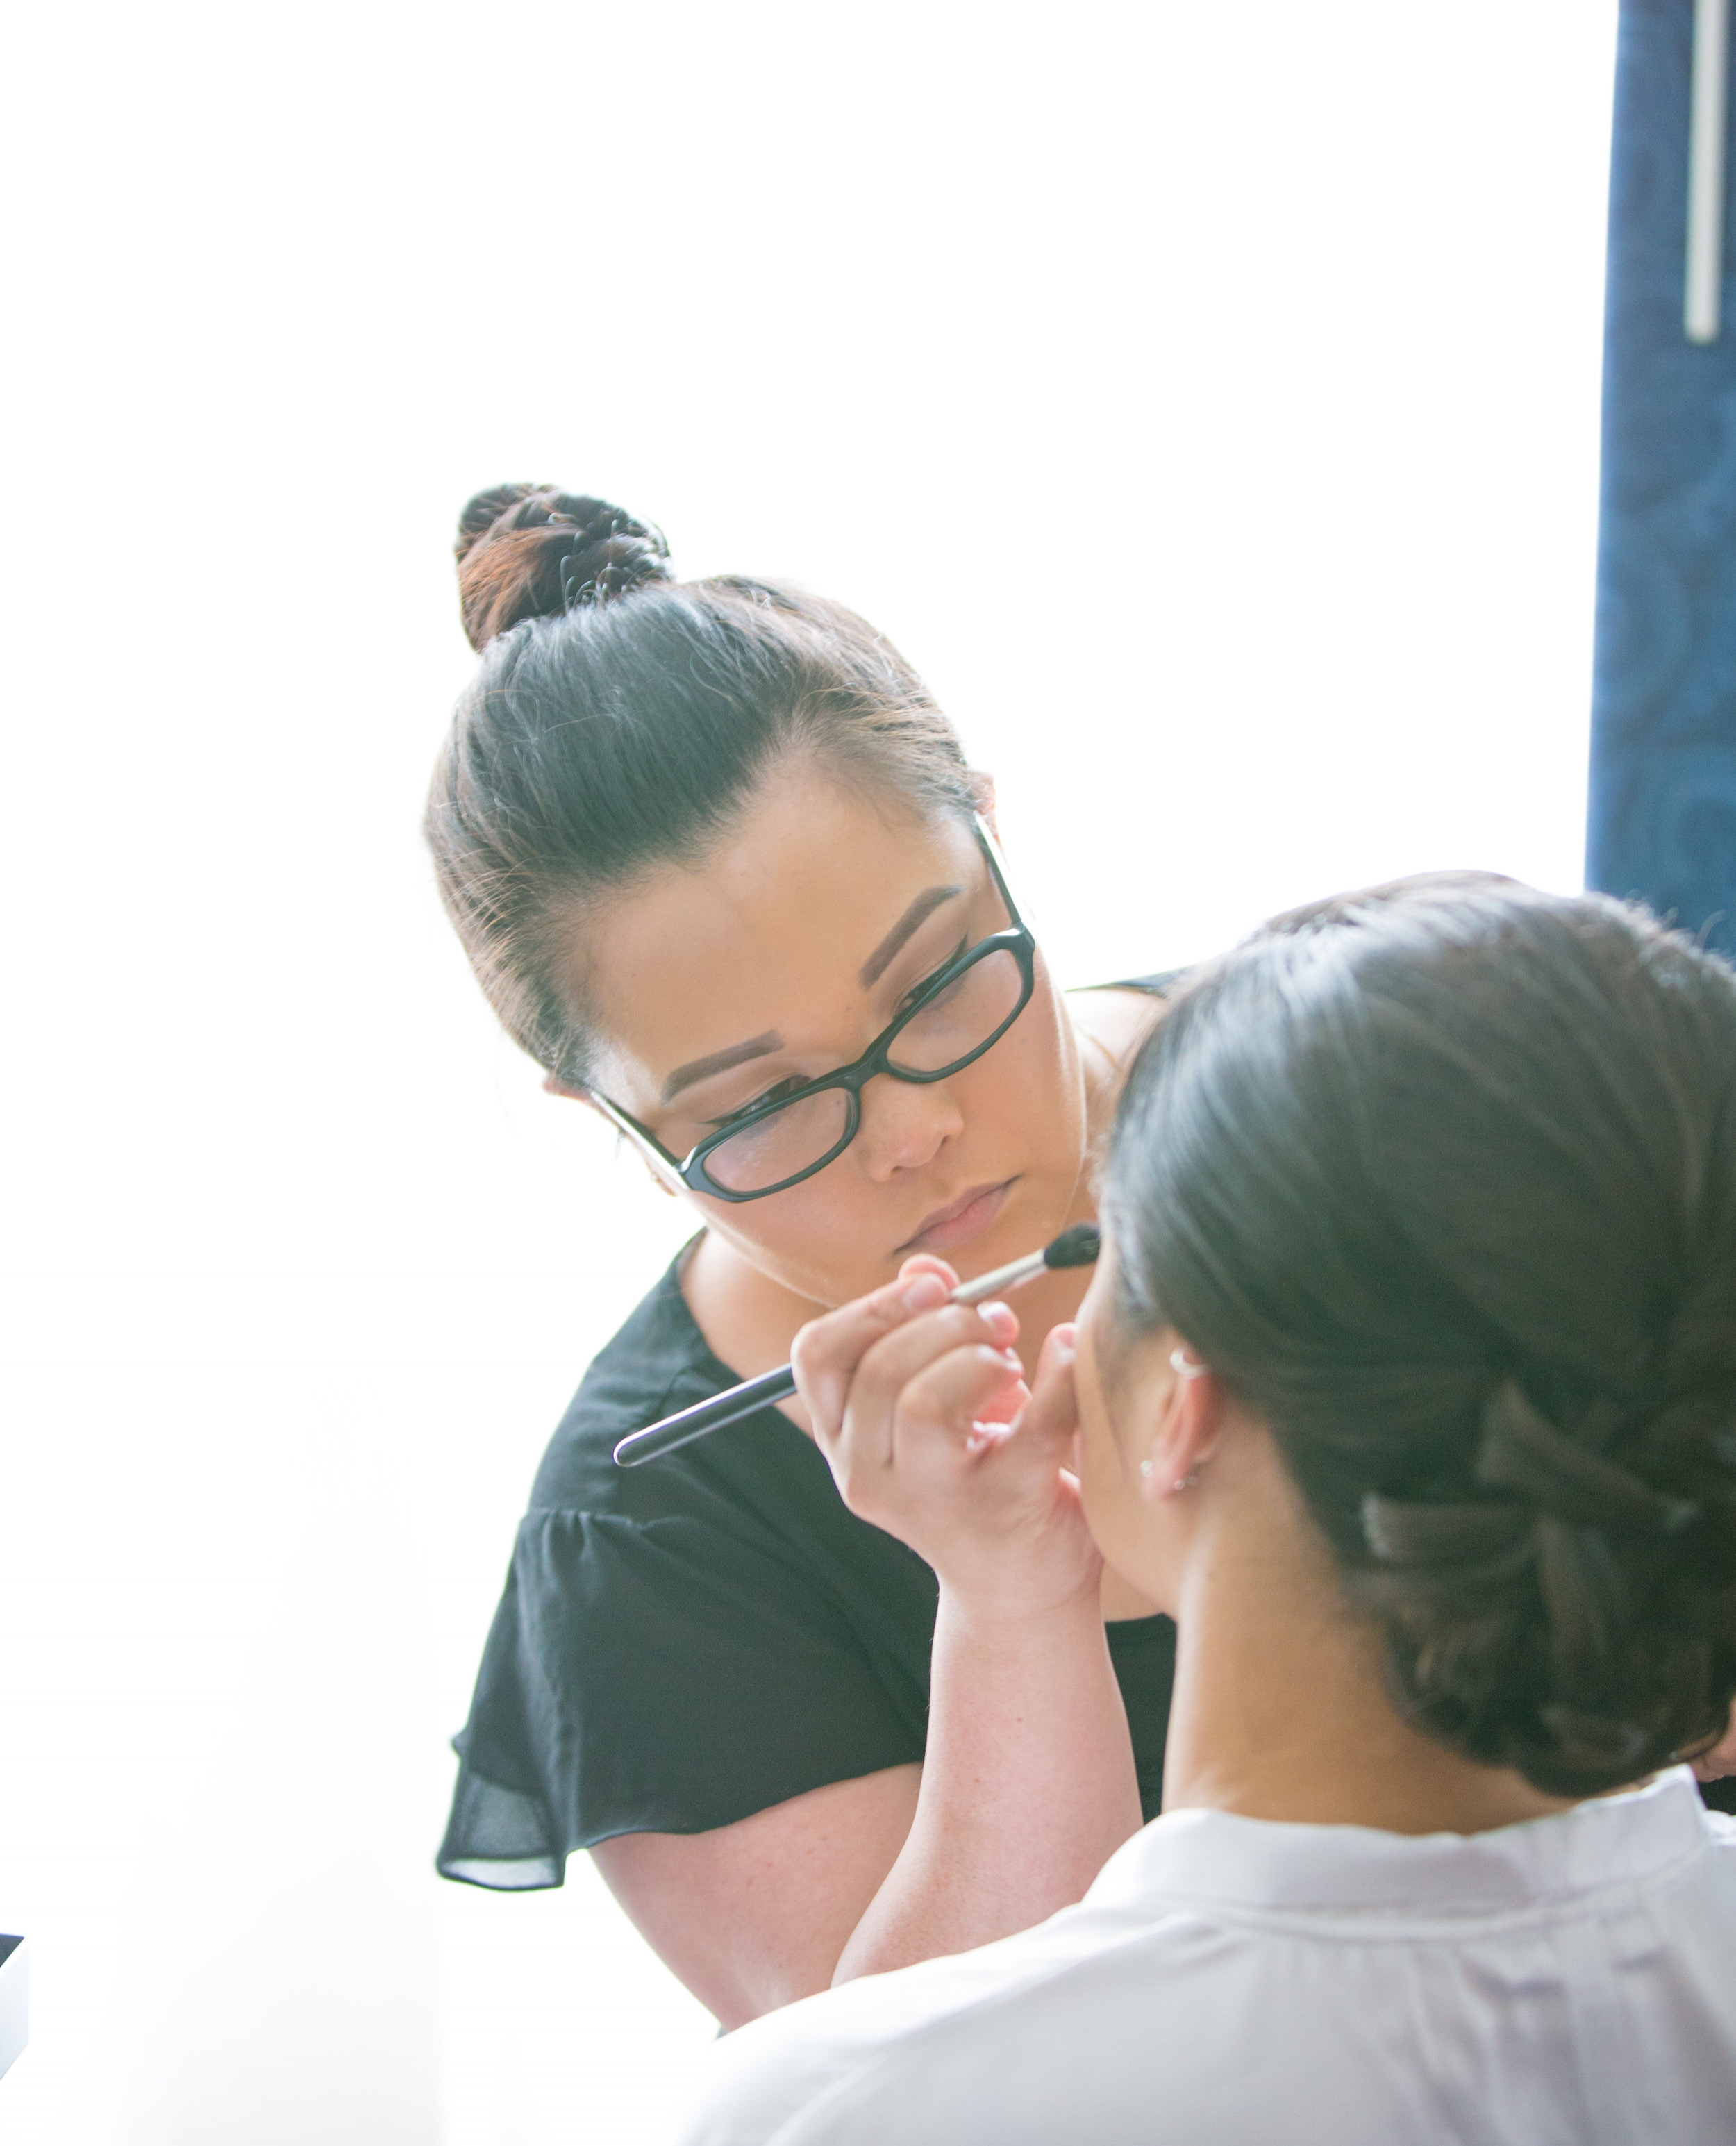 MAKEUP ARTIST FOR WEDDINGS, PHOTOSHOOTS, & Special events. -